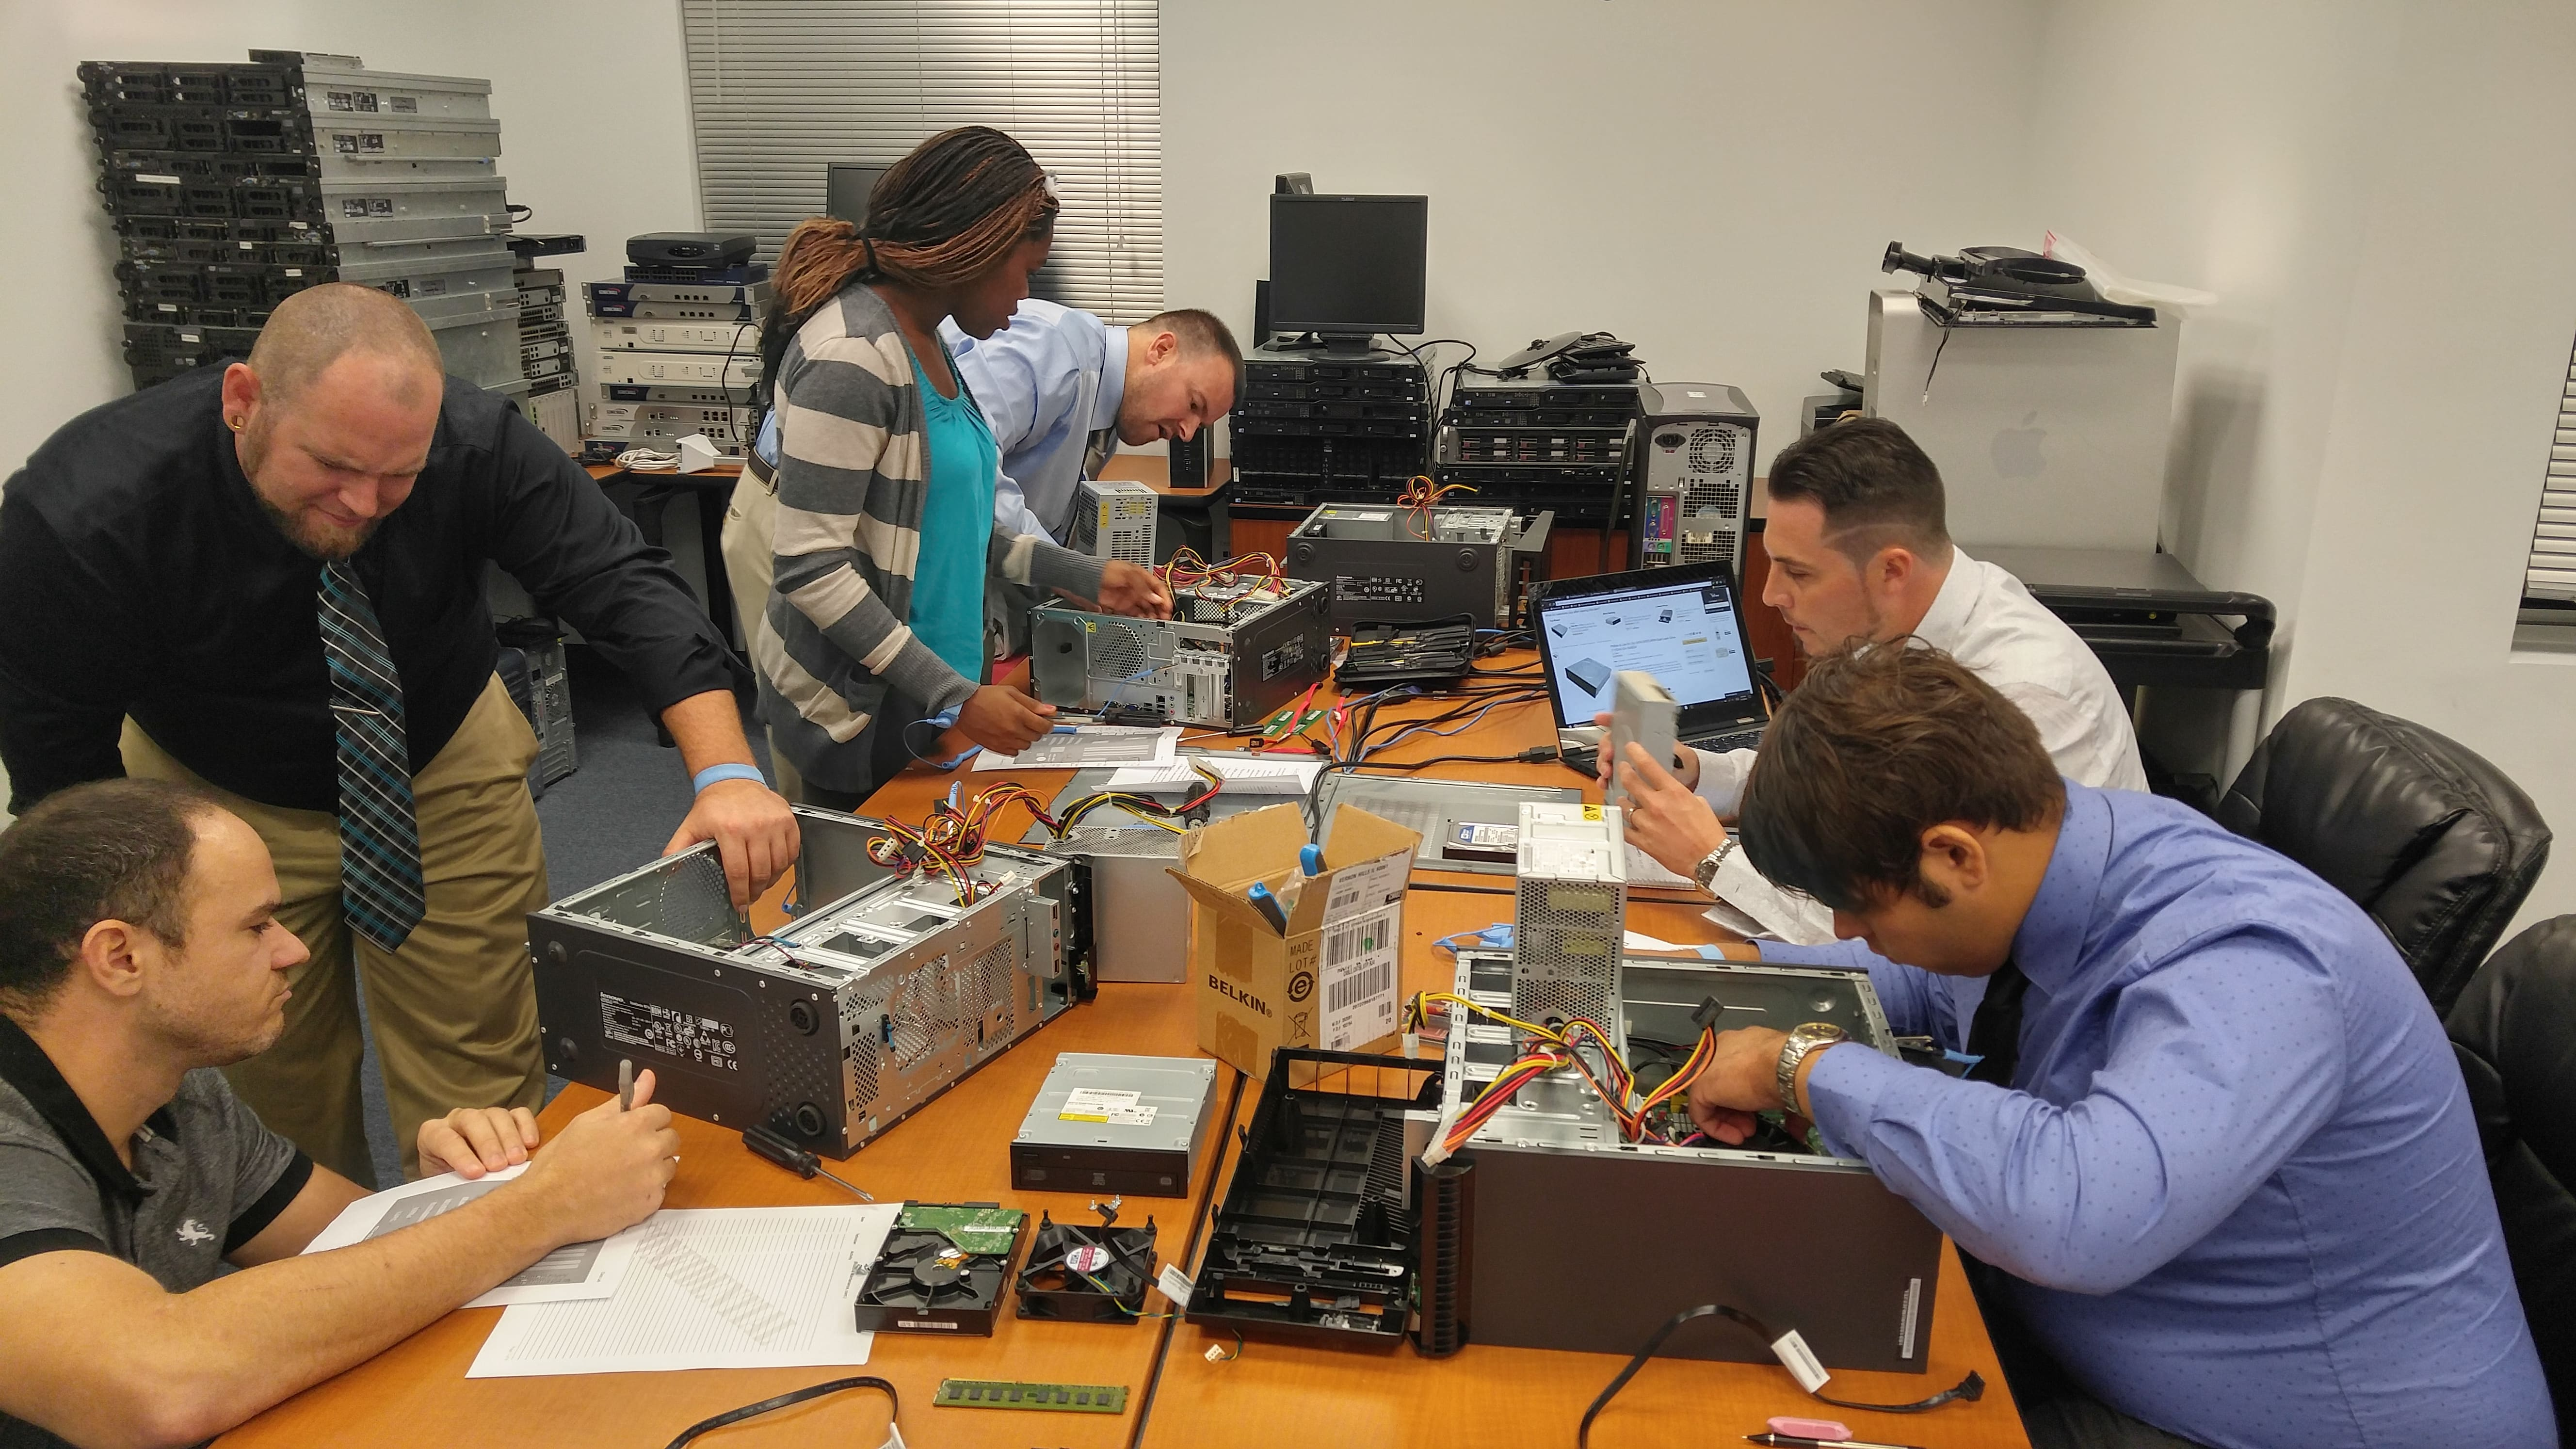 Breaking Down and Building Up PC's at Keiser University Fort Myers